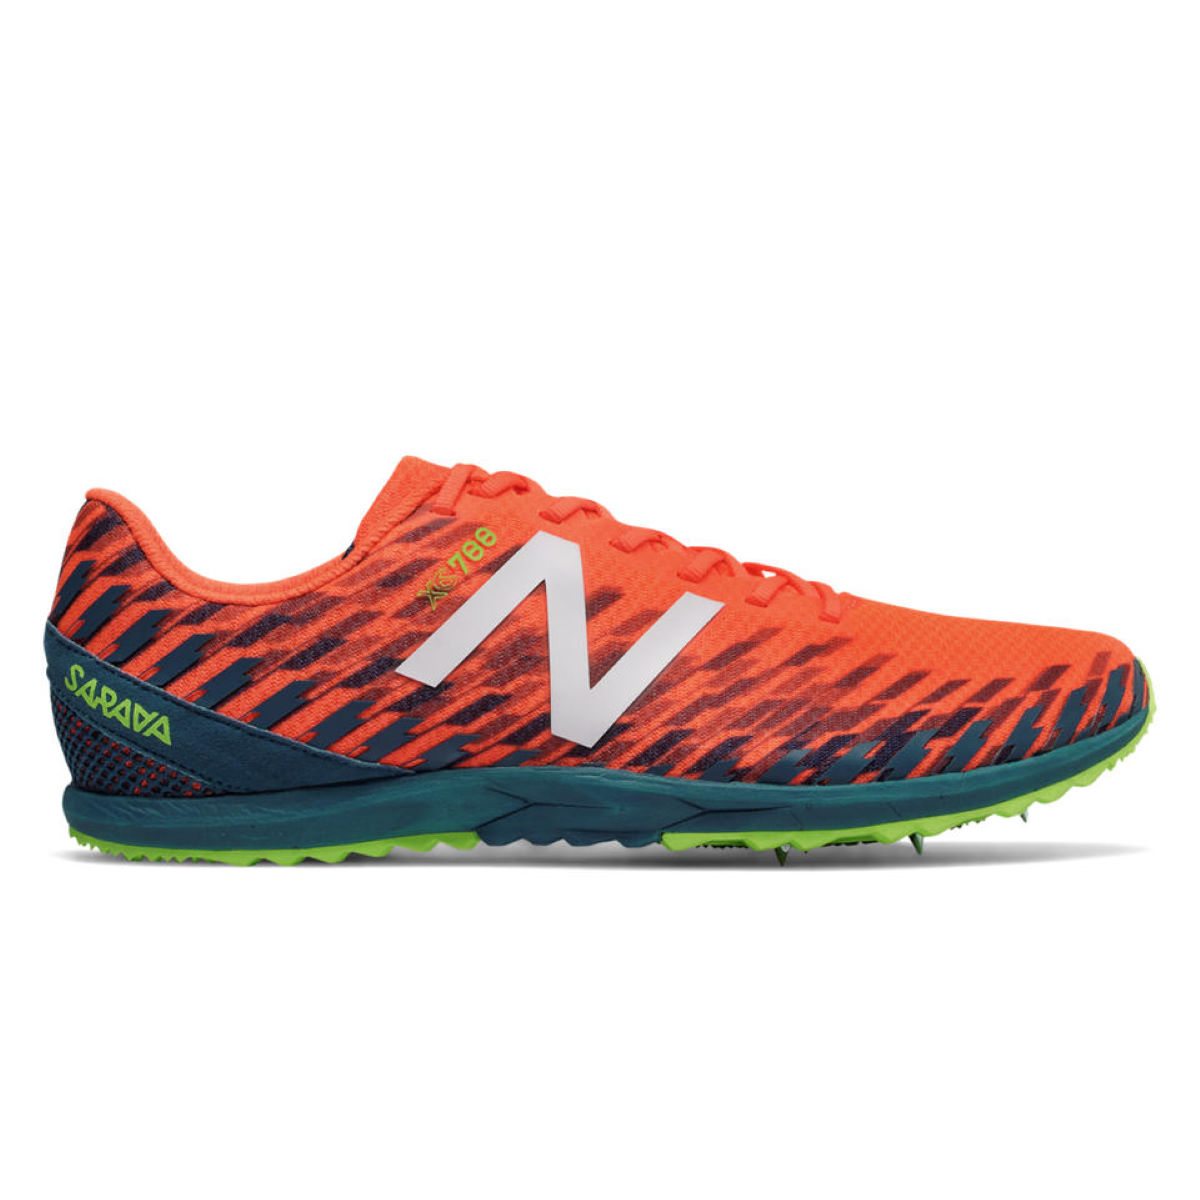 Chaussures de cross-country New Balance 700 (à pointes) - UK 11